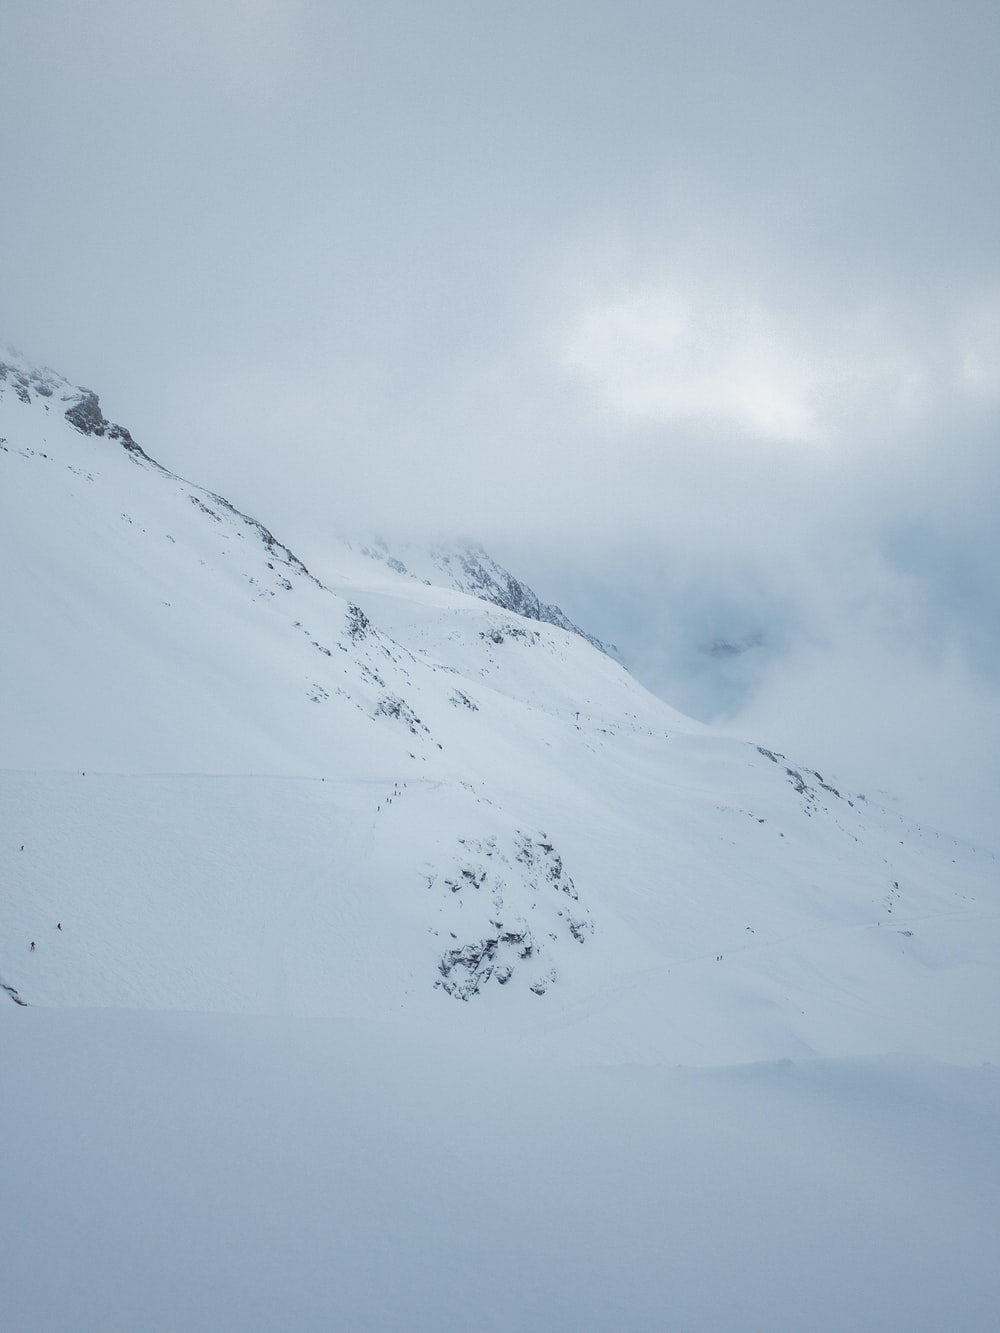 snow-covered mountains under heavy clouds